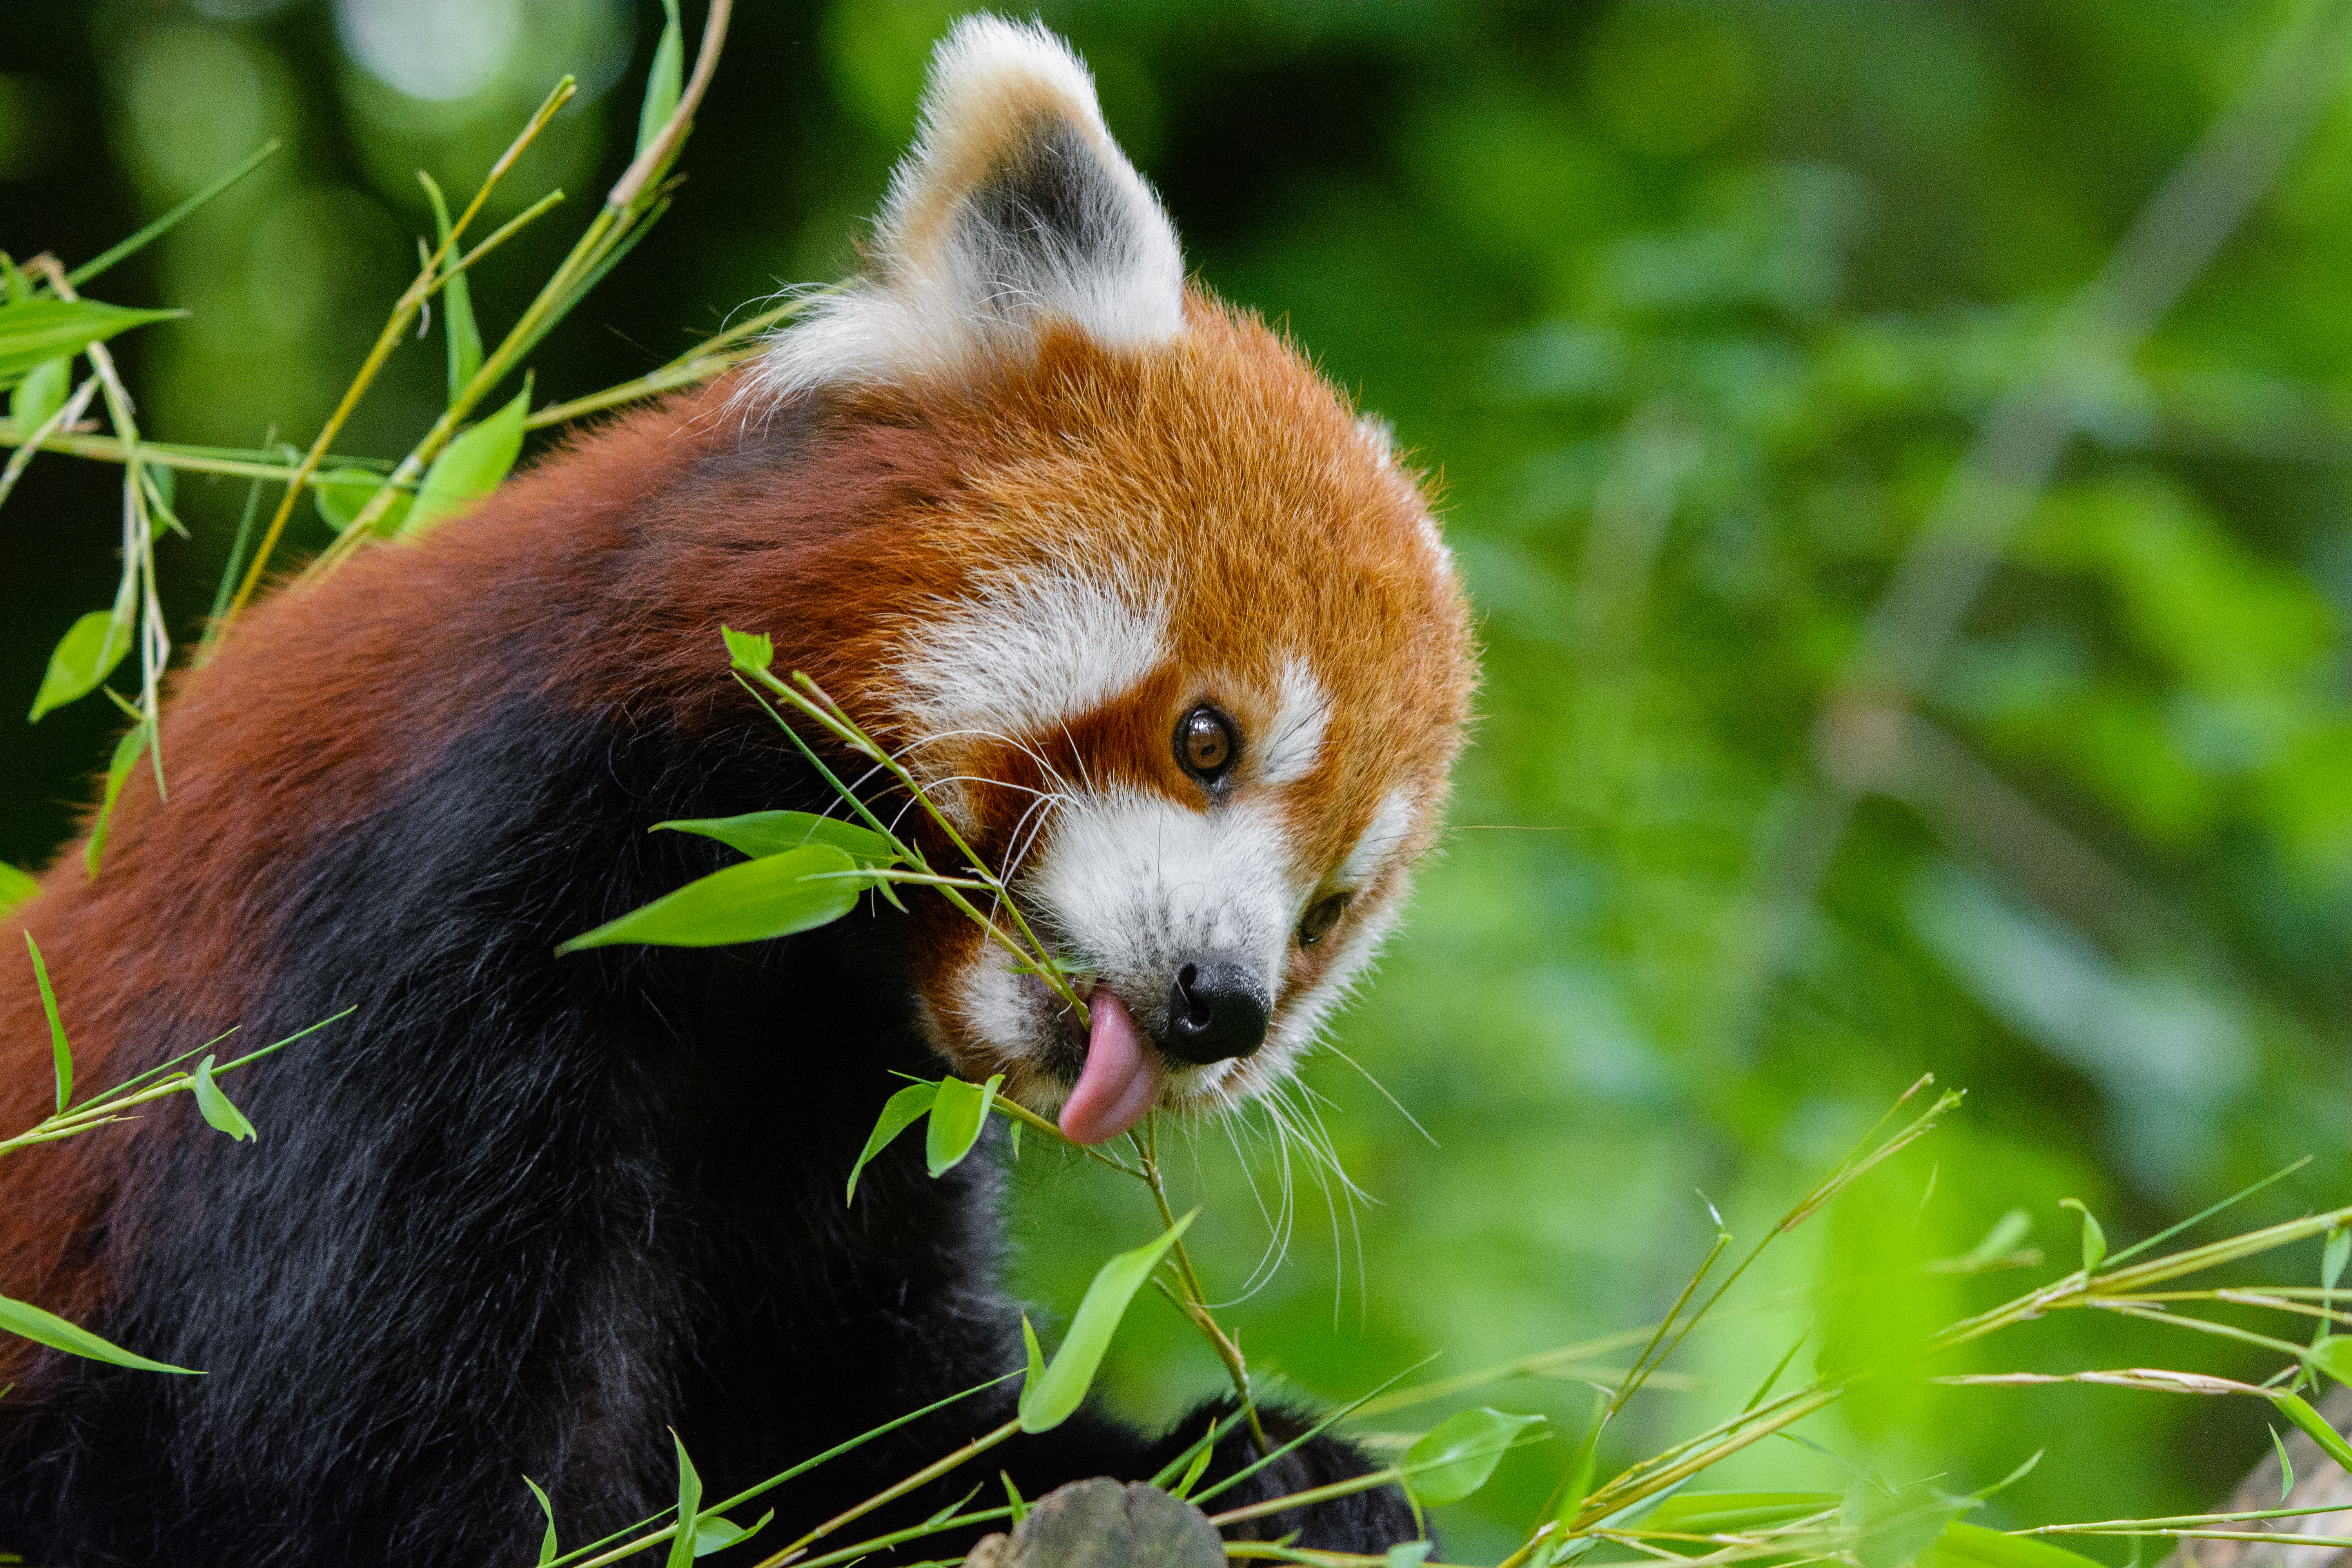 124344 download wallpaper Animals, Little Panda, Small Panda, Fiery Panda, Branches, Nice, Sweetheart, Food screensavers and pictures for free